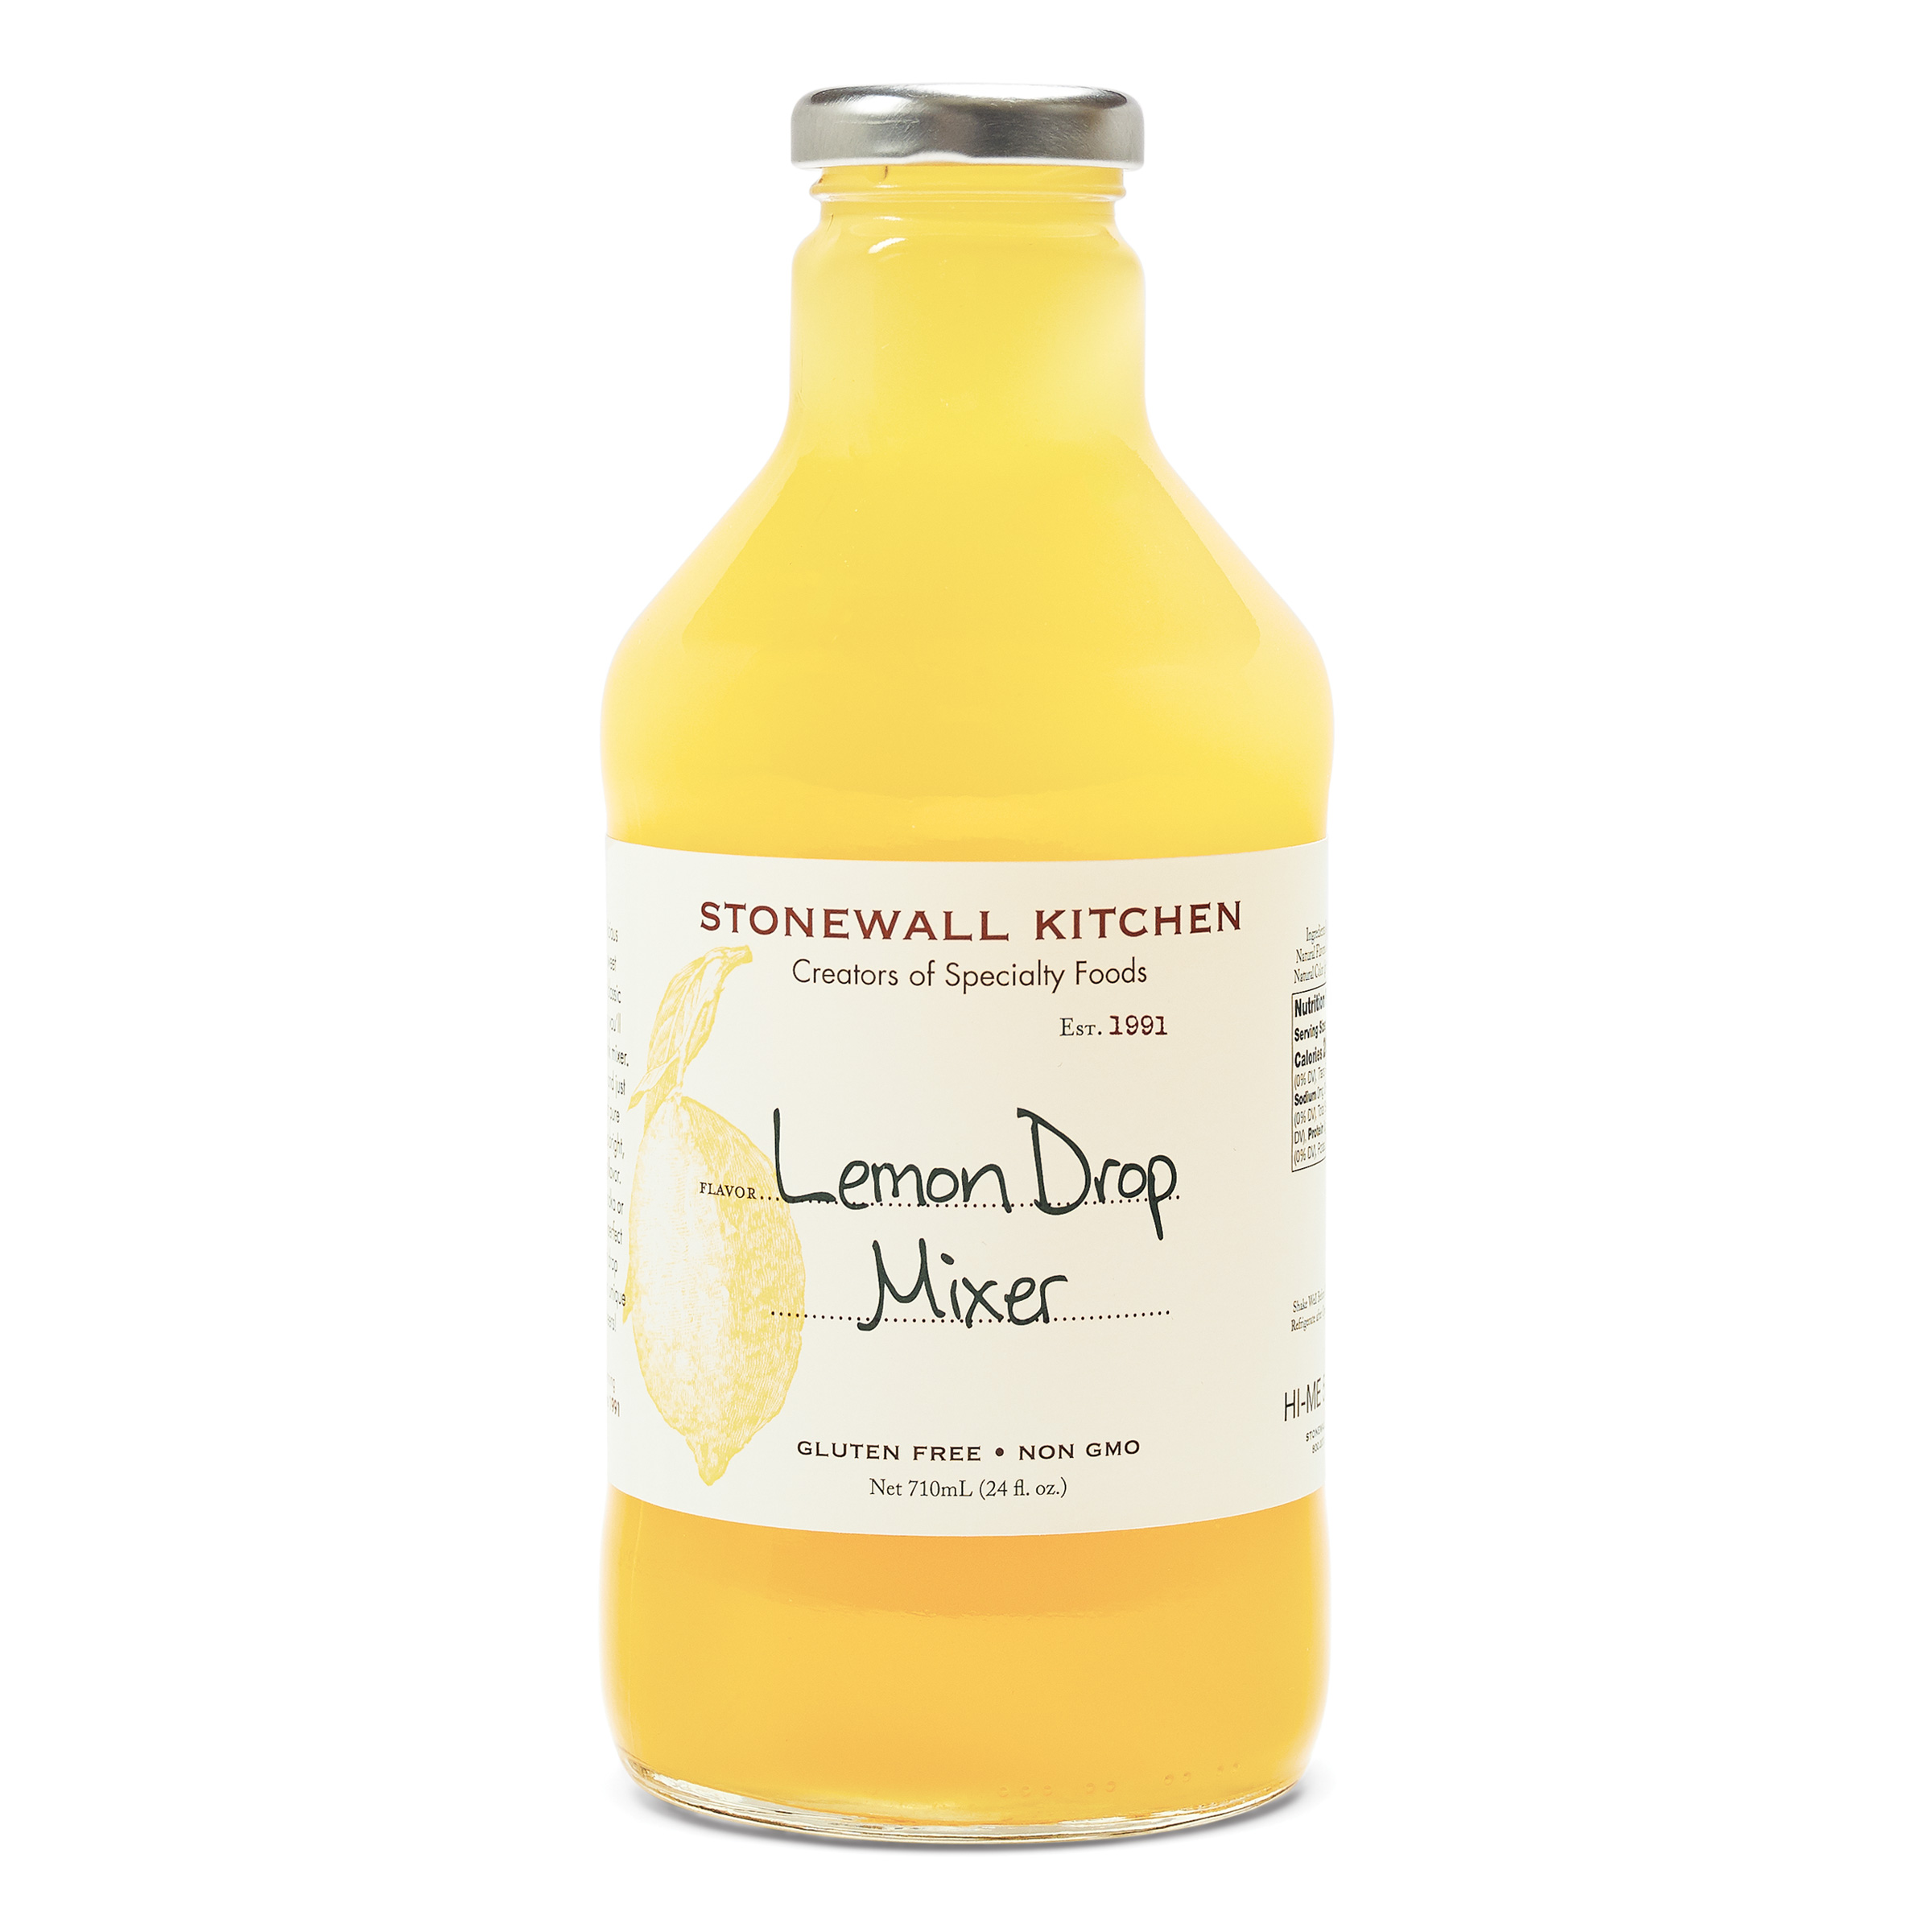 stonewall kitchen com lowes hood lemon drop mixer